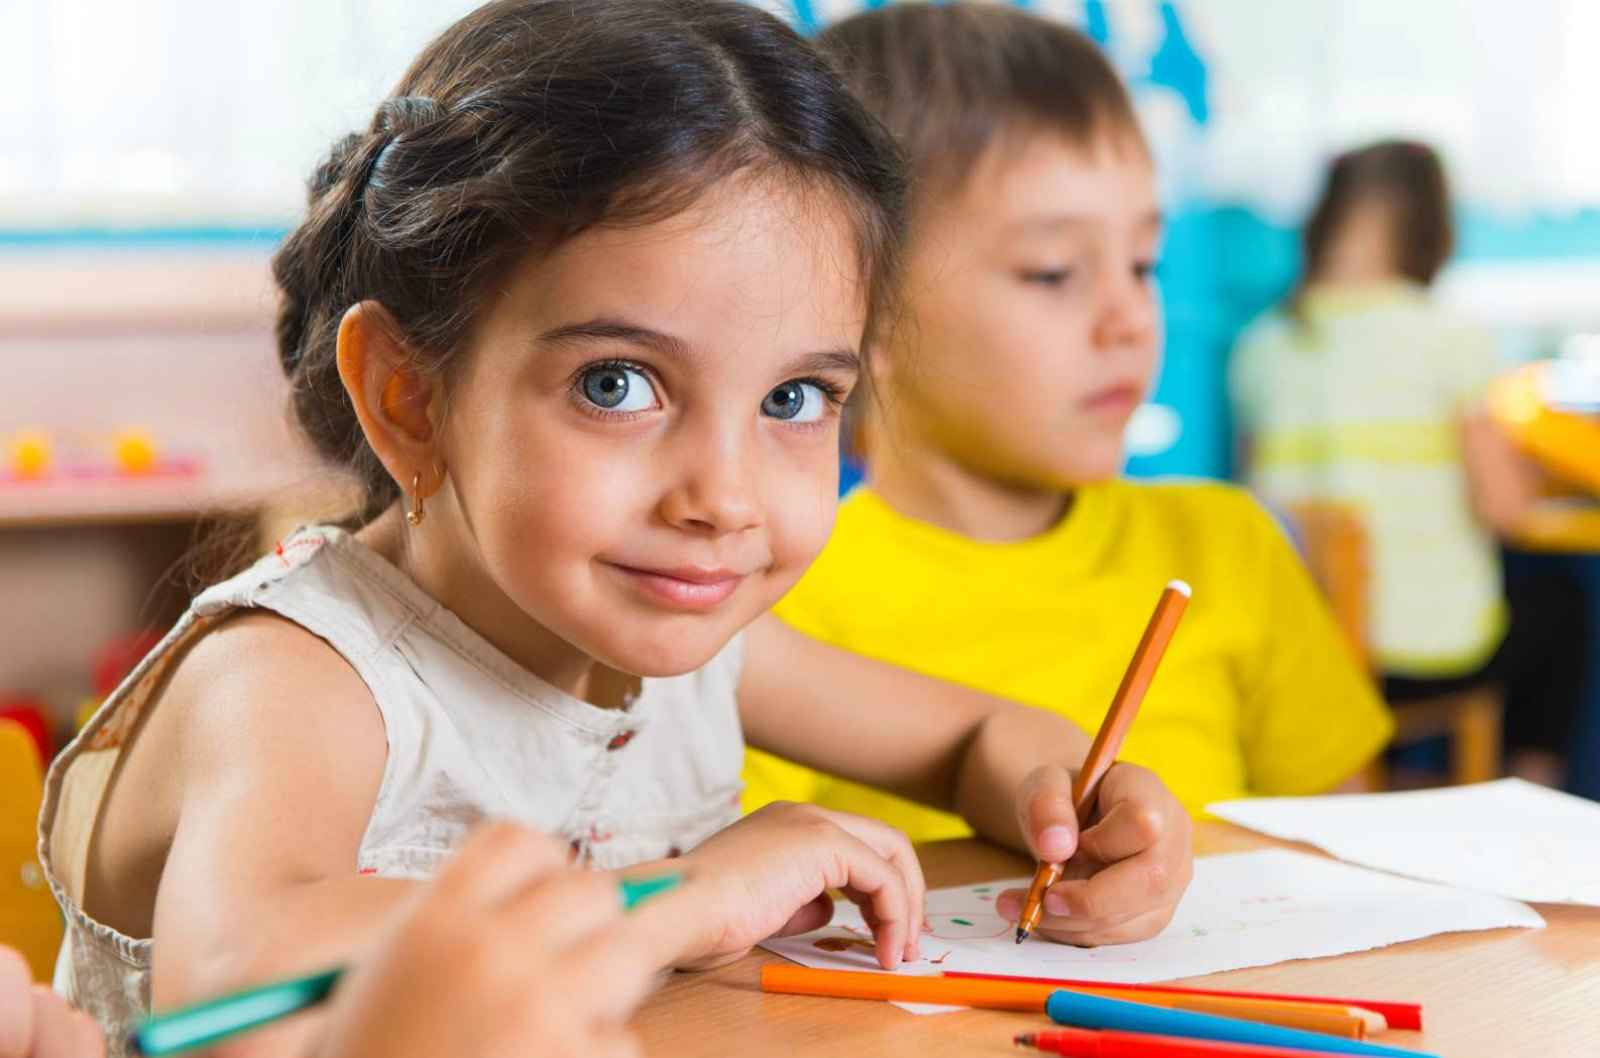 Software Program Identifies At-Risk Children in the Classroom